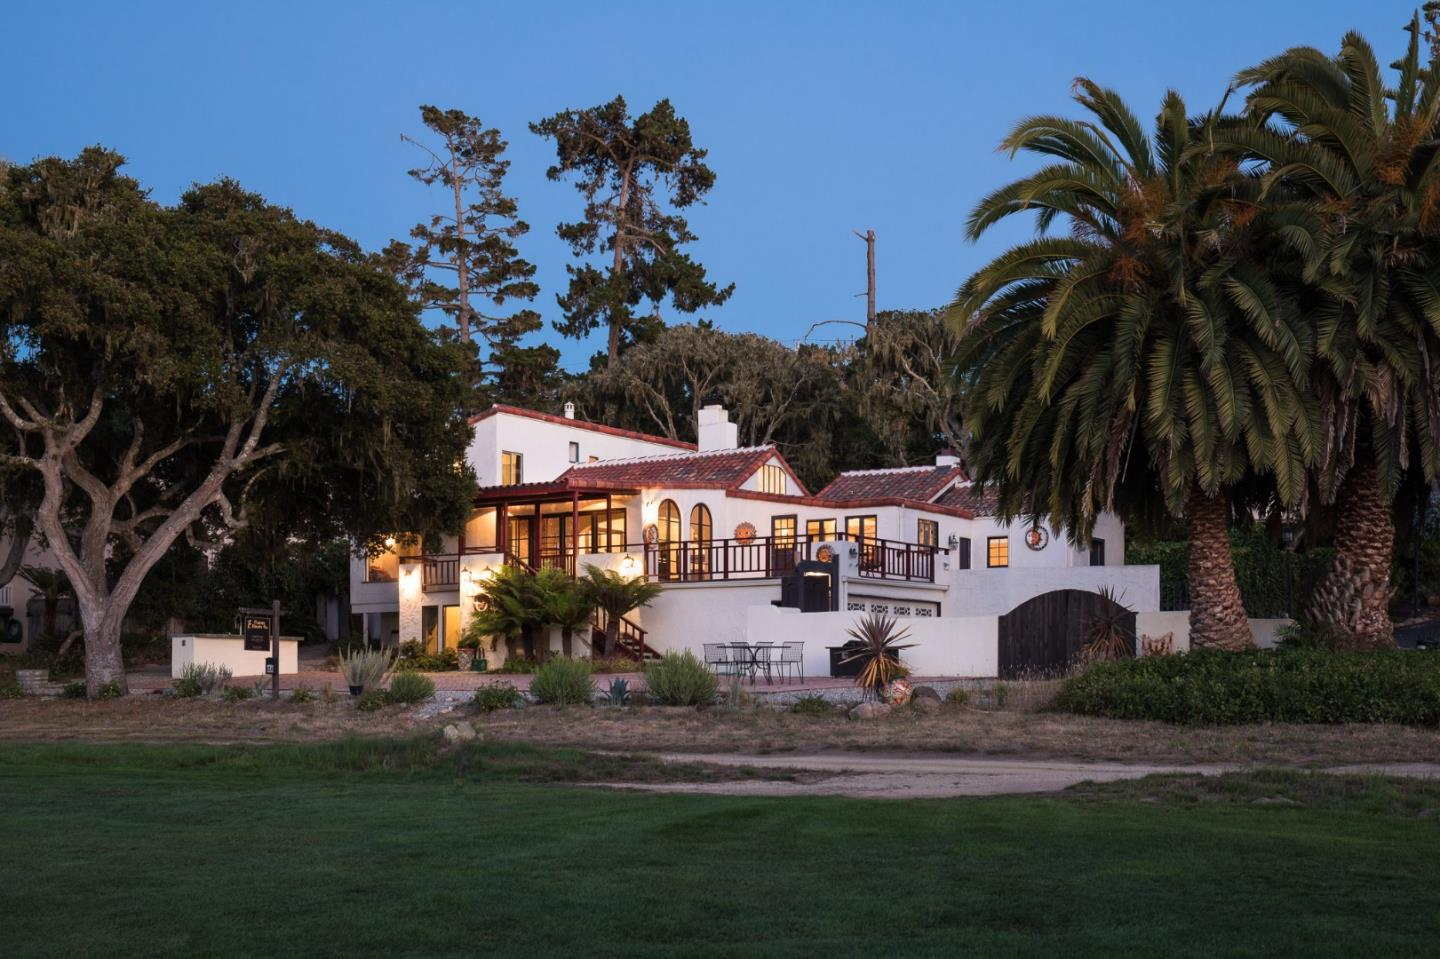 Property for sale at 1001 San Carlos RD, Pebble Beach,  CA 93953